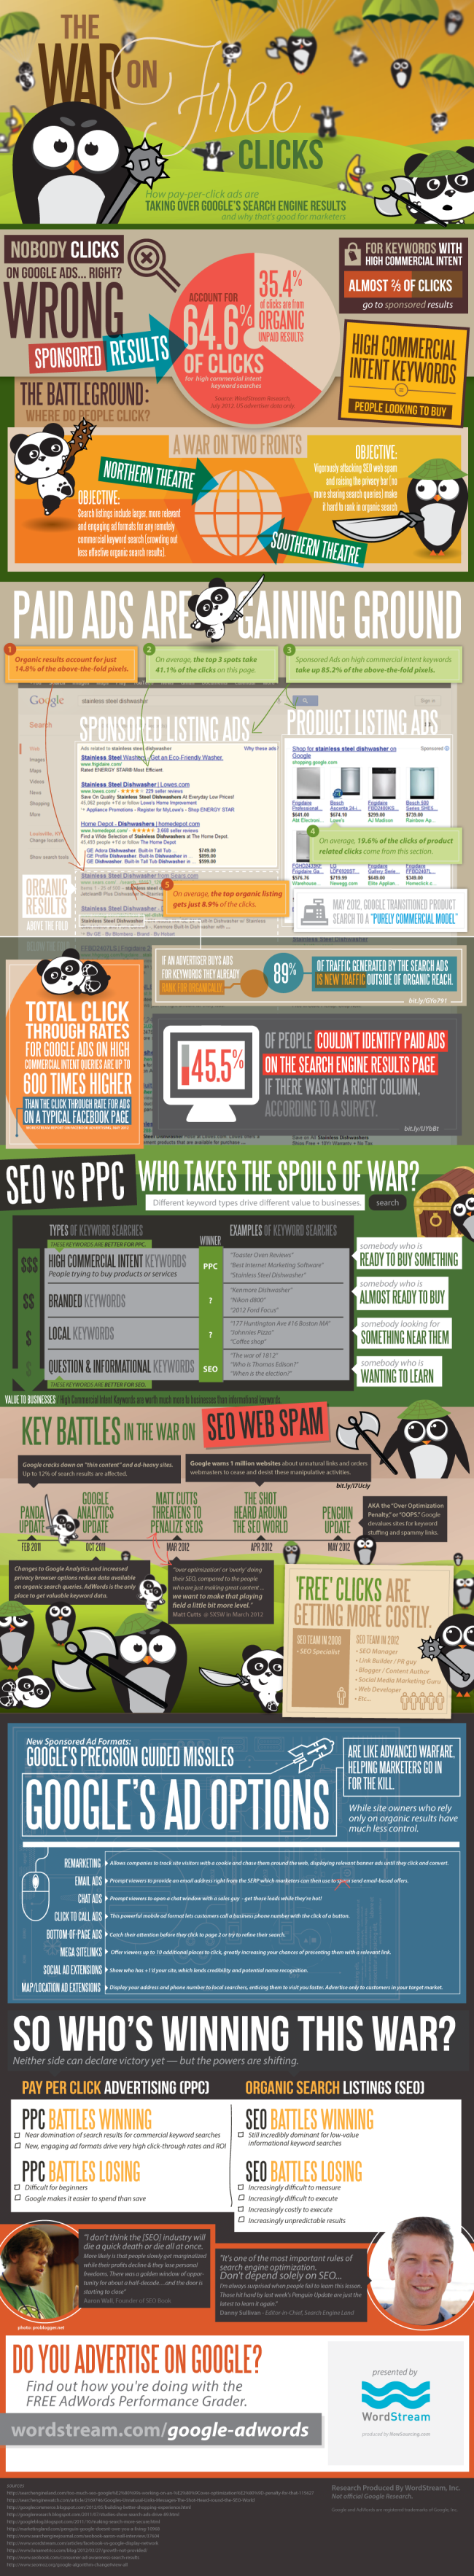 has ppc gotten a bad rap in inbound marketing